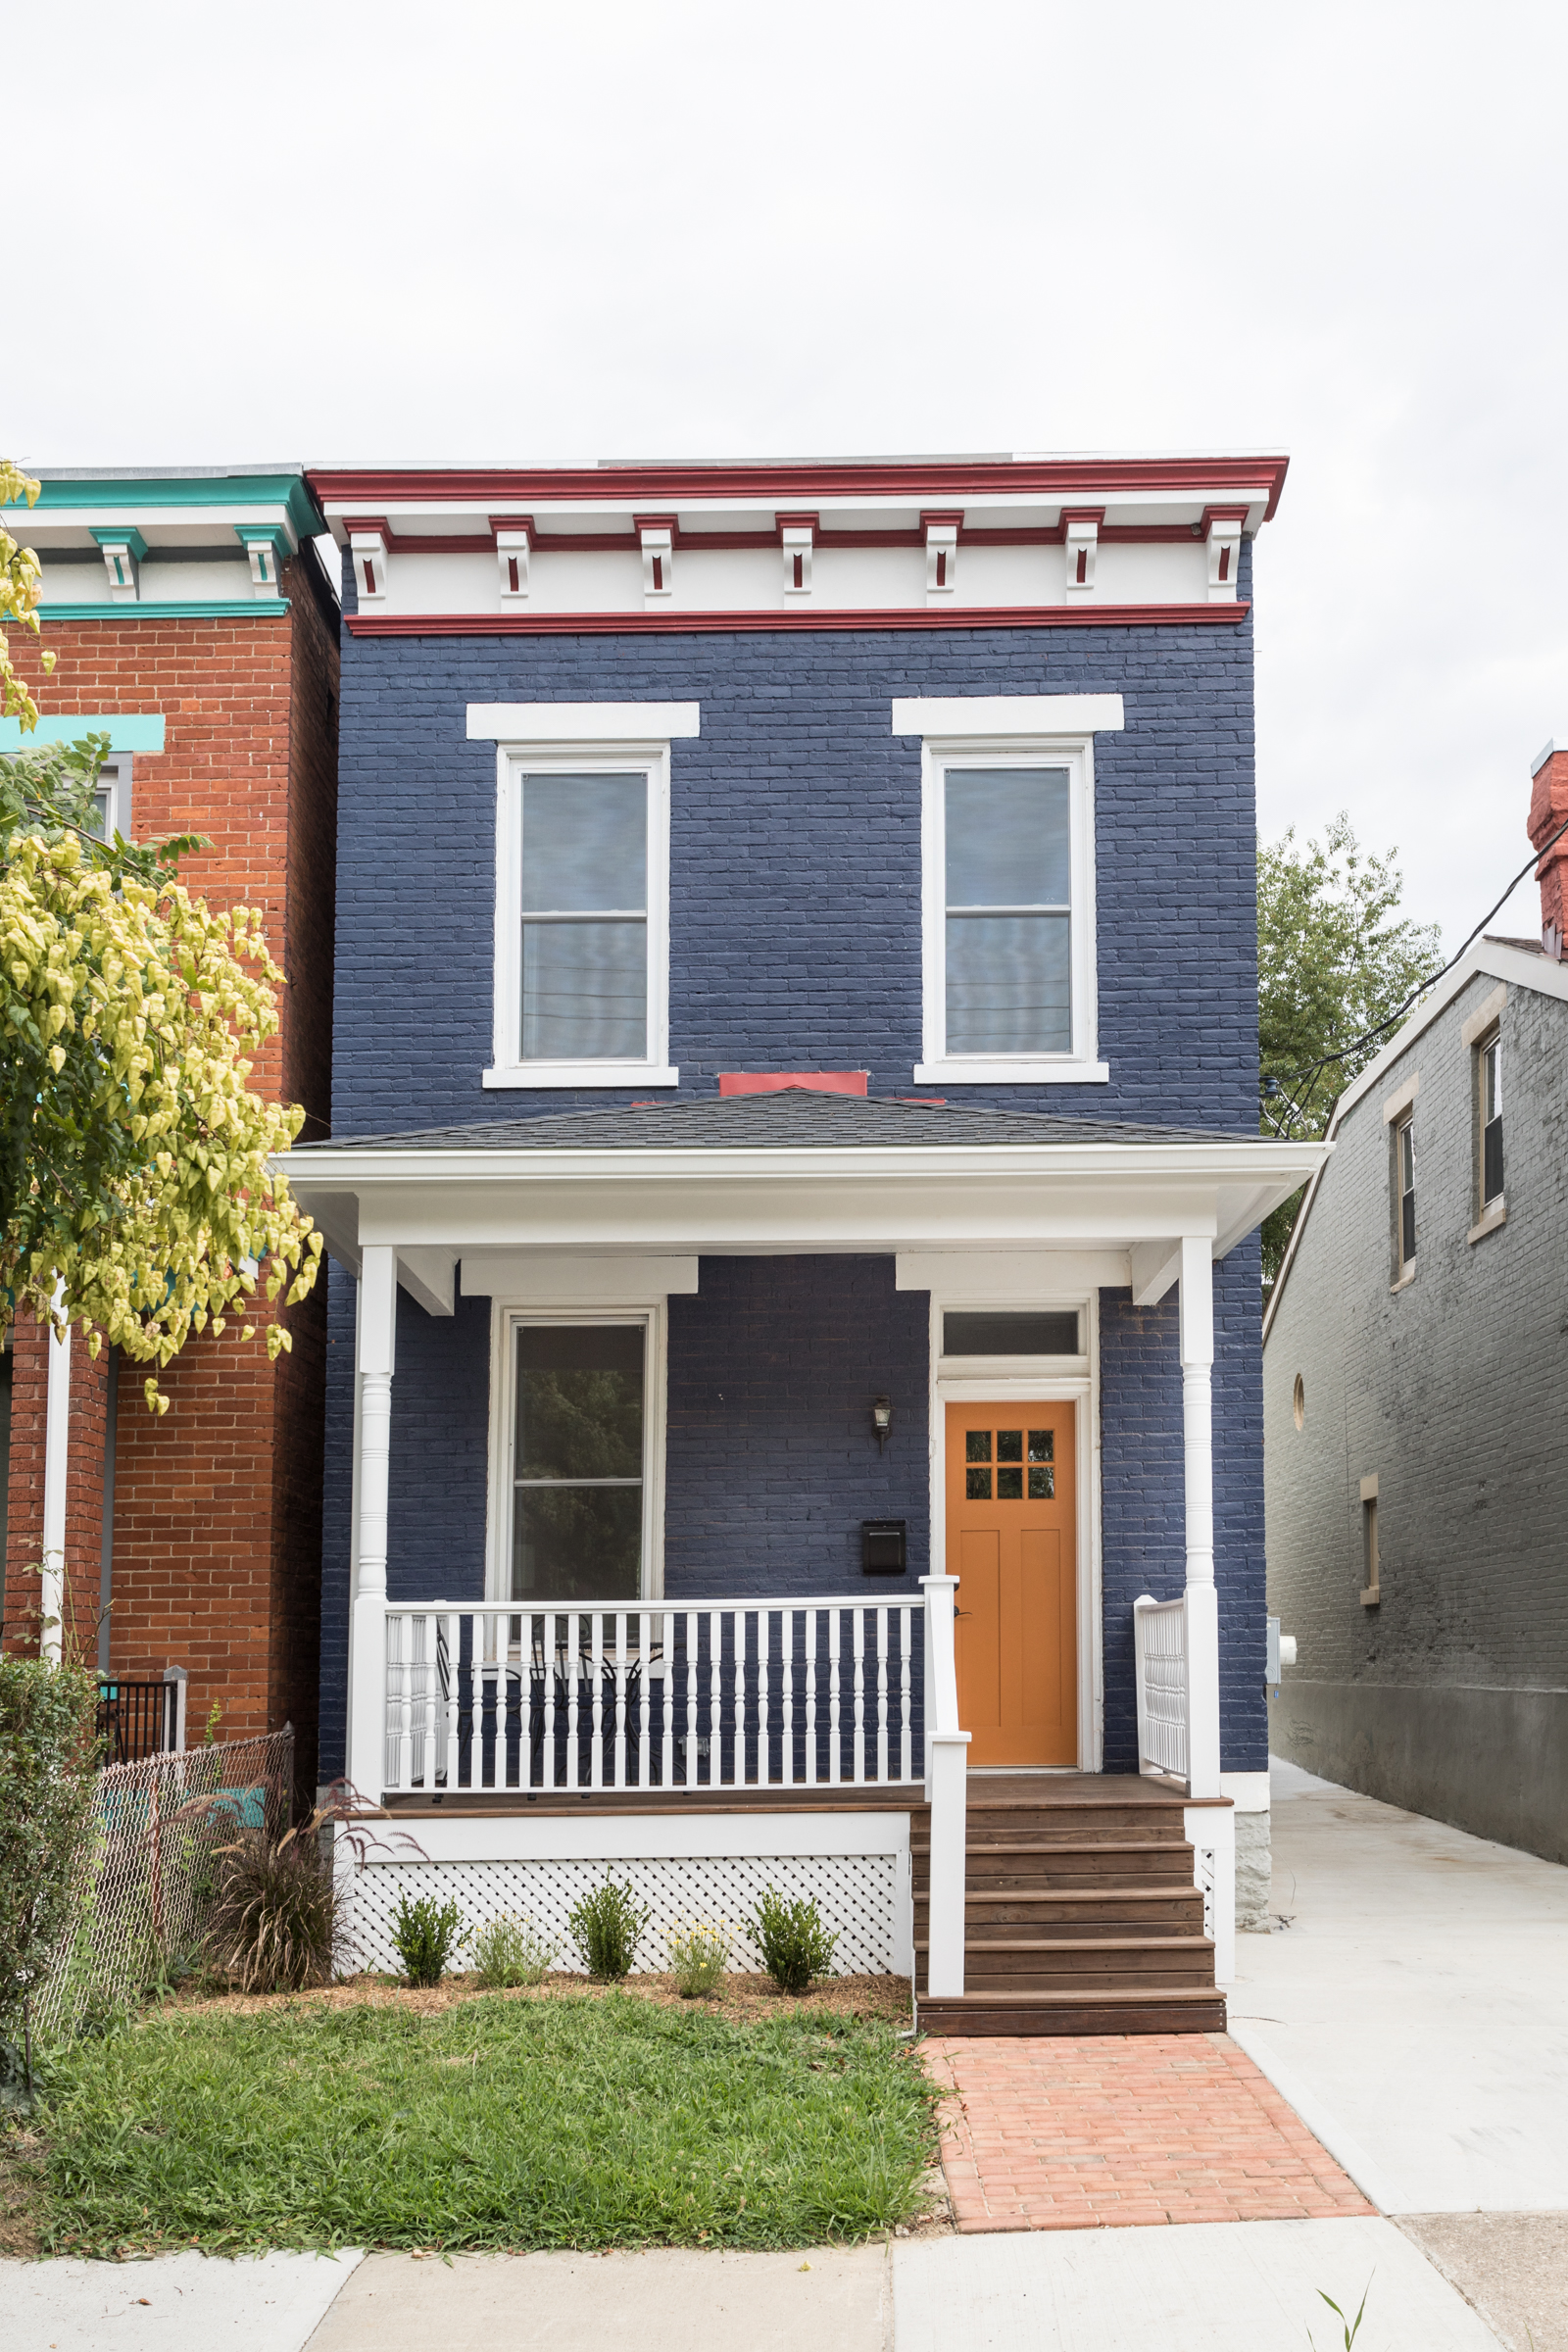 1728 Hanfield Street is a 3-bedroom, 2-bathroom home in Northside. Amy Danner and Frank Melendez bought the house in September 2015 and started renovating in May 2016. They completed the project, which included an addition to the back end of the house and a complete overhaul to the interior (i.e. new HVAC, electric, and plumbing) in July. The house was staged by Jennifer Miller of Finishing Touch Staging & Design. / Image: Alias Imaging // Published: 8.10.17